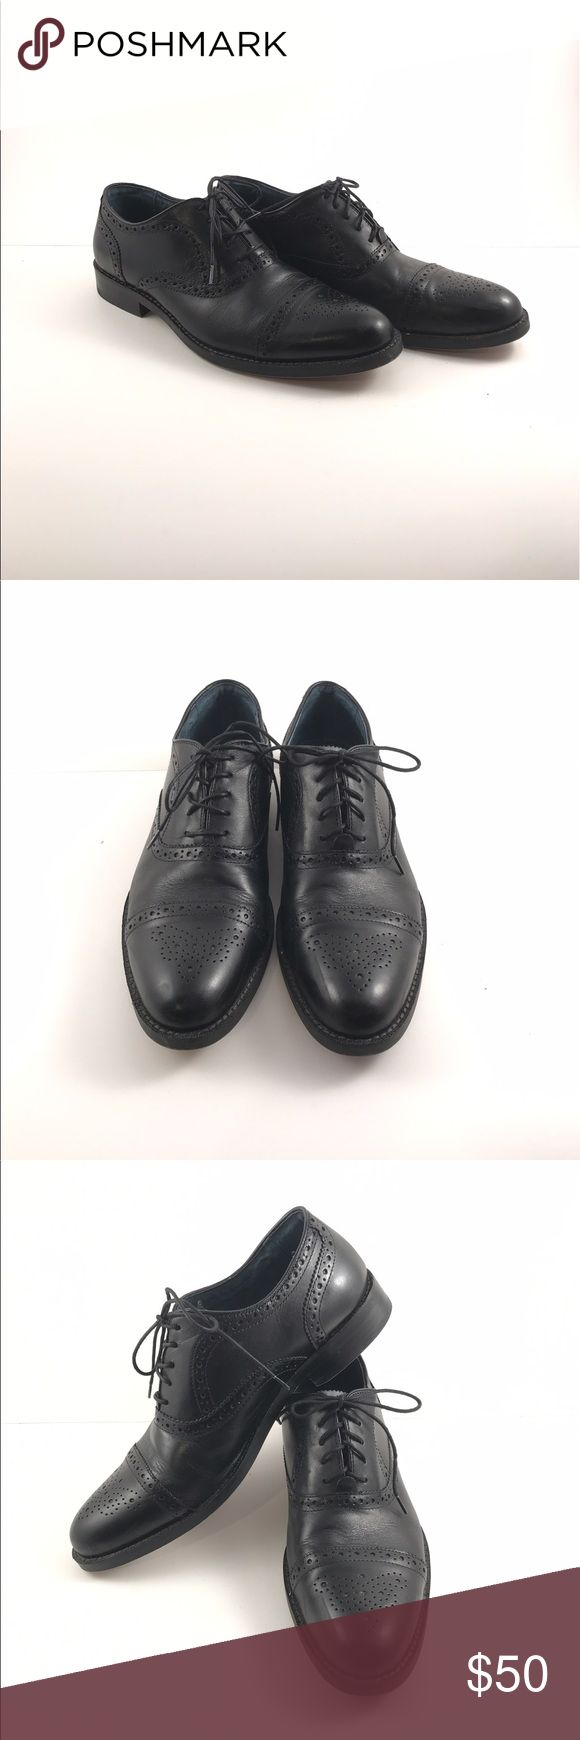 Aston grey leather Oxford shoes lace up wingtip Men's black Aston Grey gable black pebbled leather Oxford shoes Lace up wing tips. Men's size 9.  Excellent pre-owned condition.  Most visible  wear is to the soles- see pictures for condition Aston Grey Shoes Oxfords & Derbys